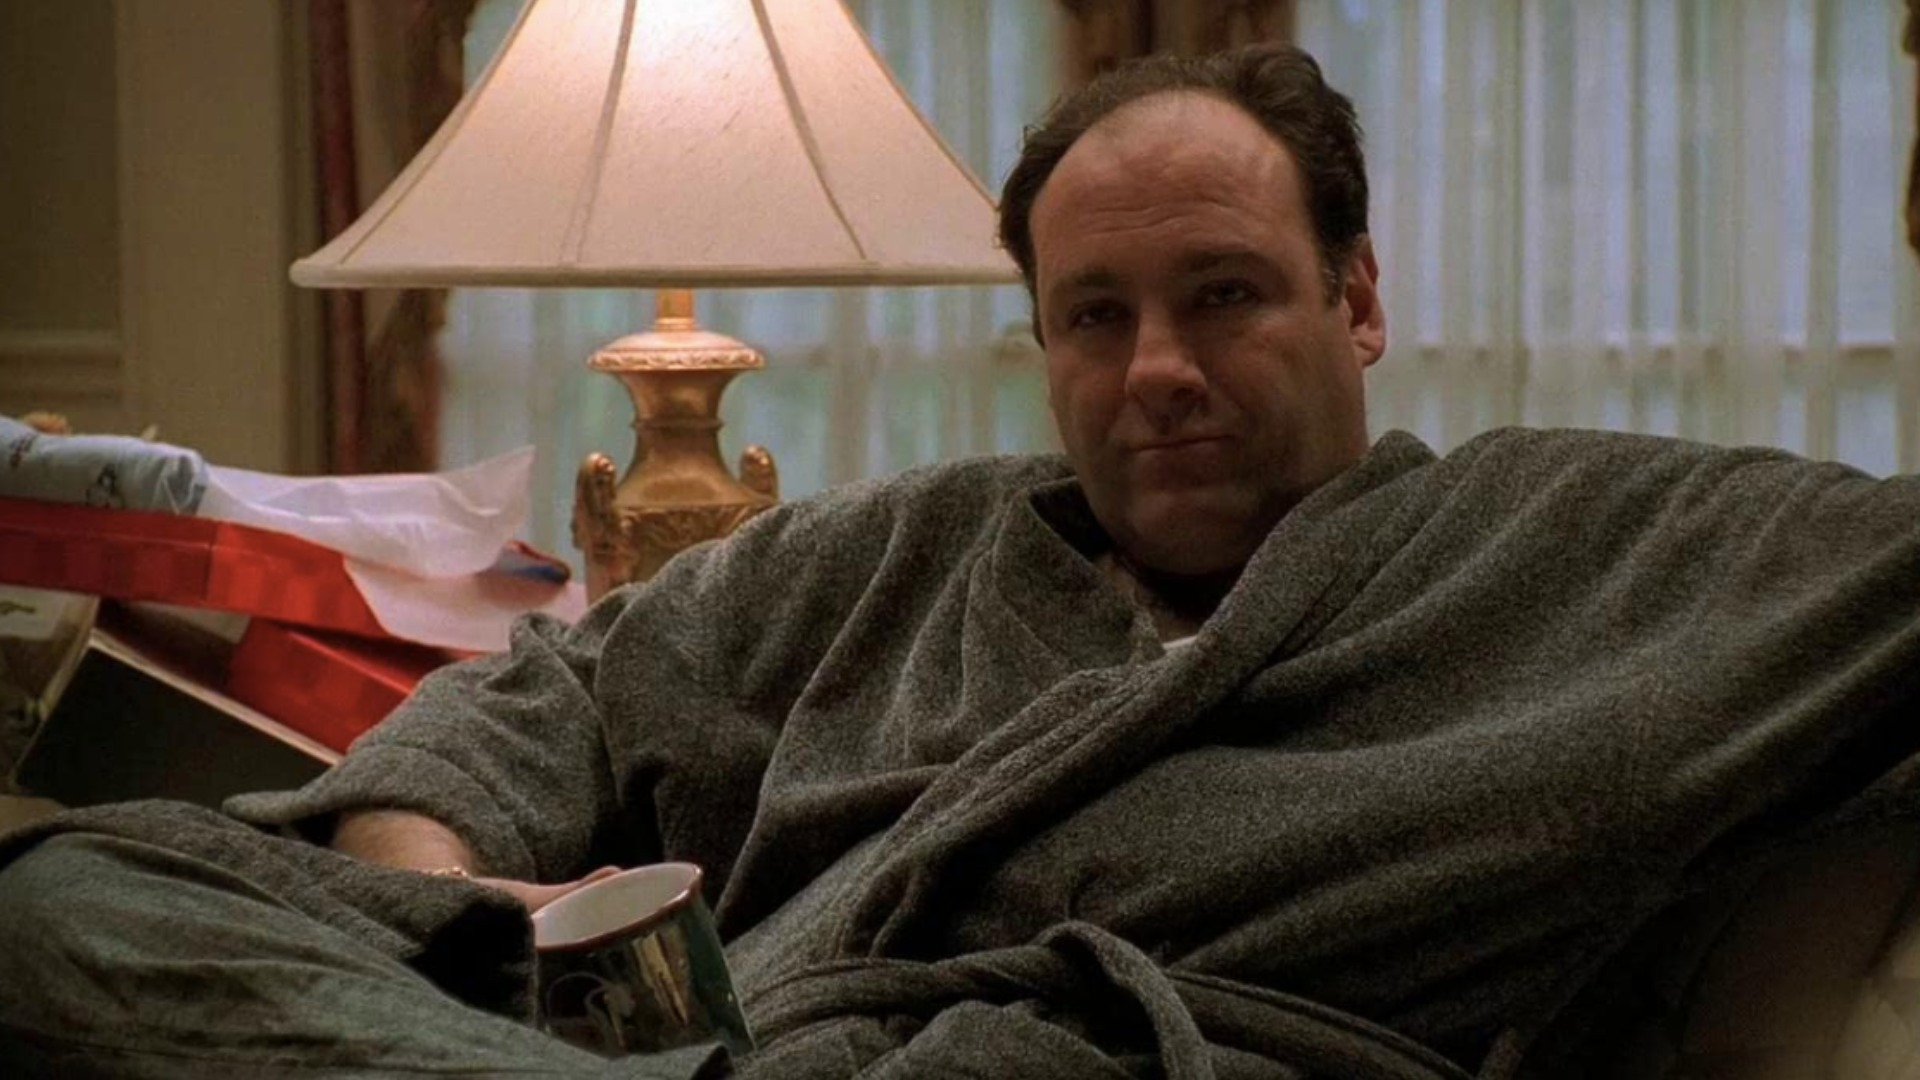 Sopranos prequel movie The Many Saints of Newark release delayed to September 2021